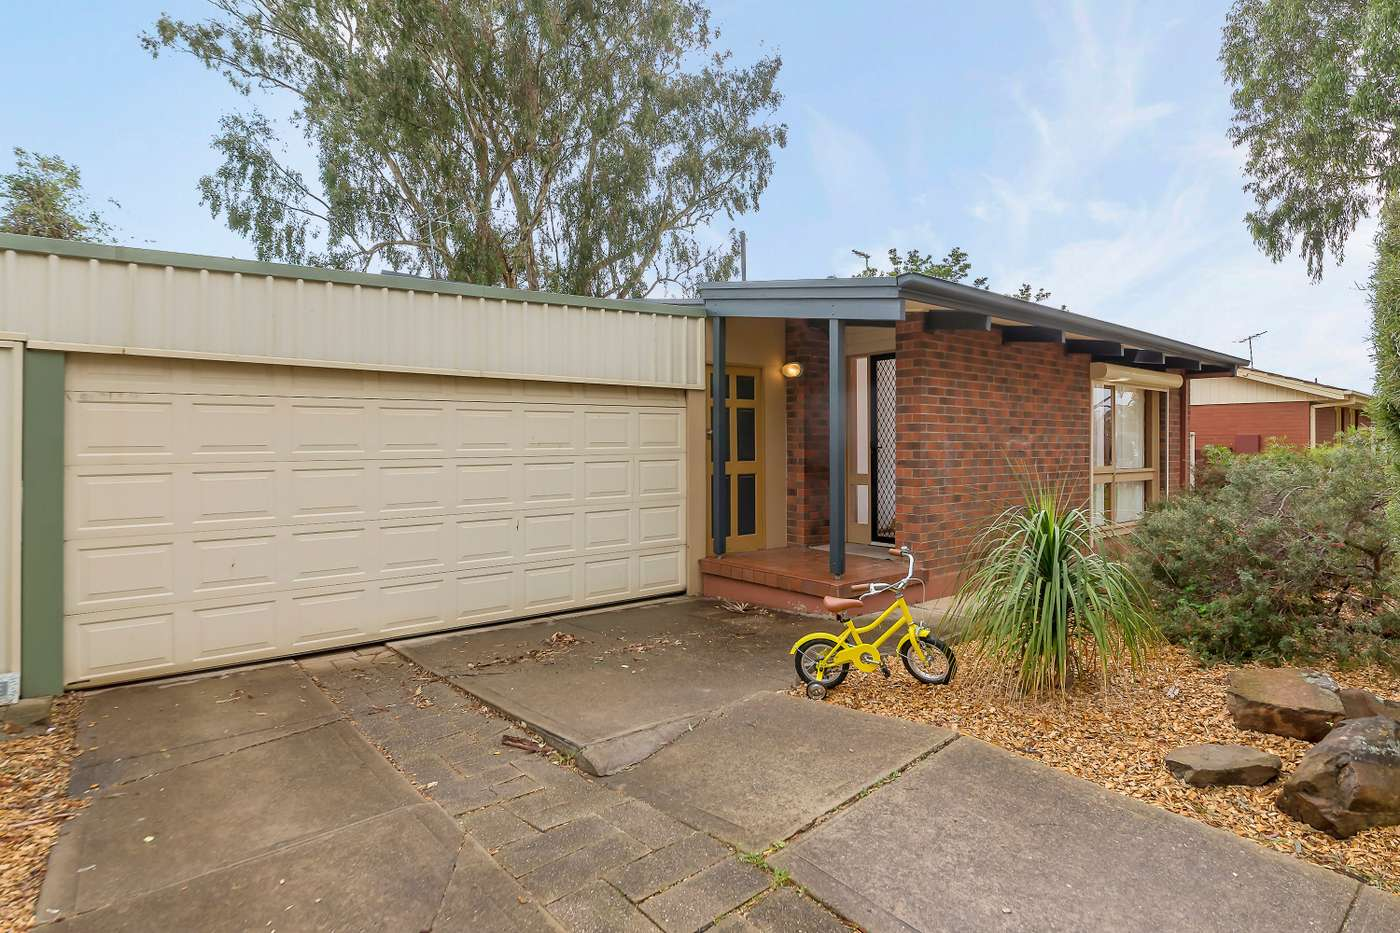 Main view of Homely house listing, 14 Hawker Crescent, Elizabeth East, SA 5112